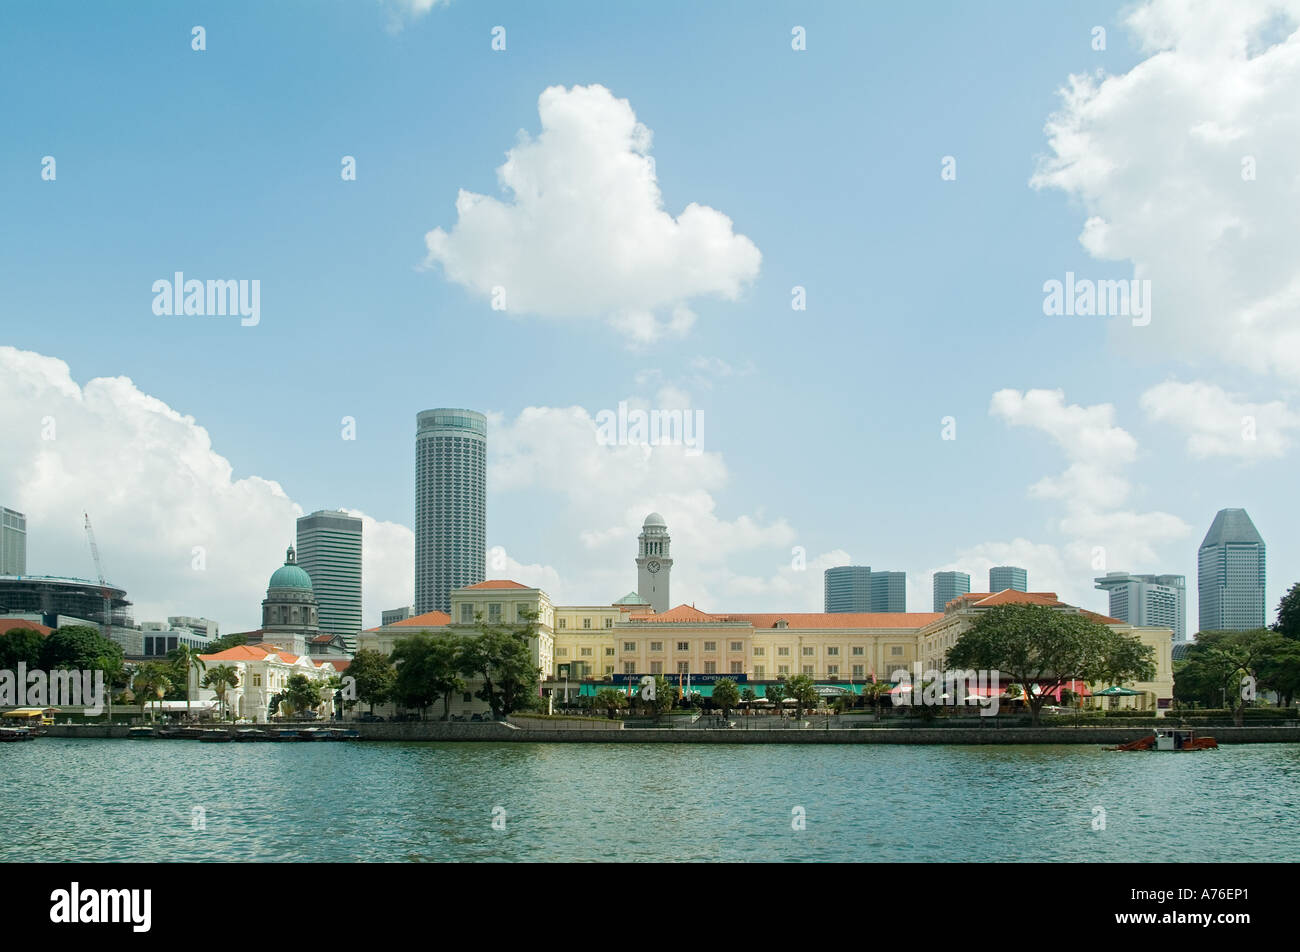 Singapore River and Asian Civilisations Museum - Stock Image